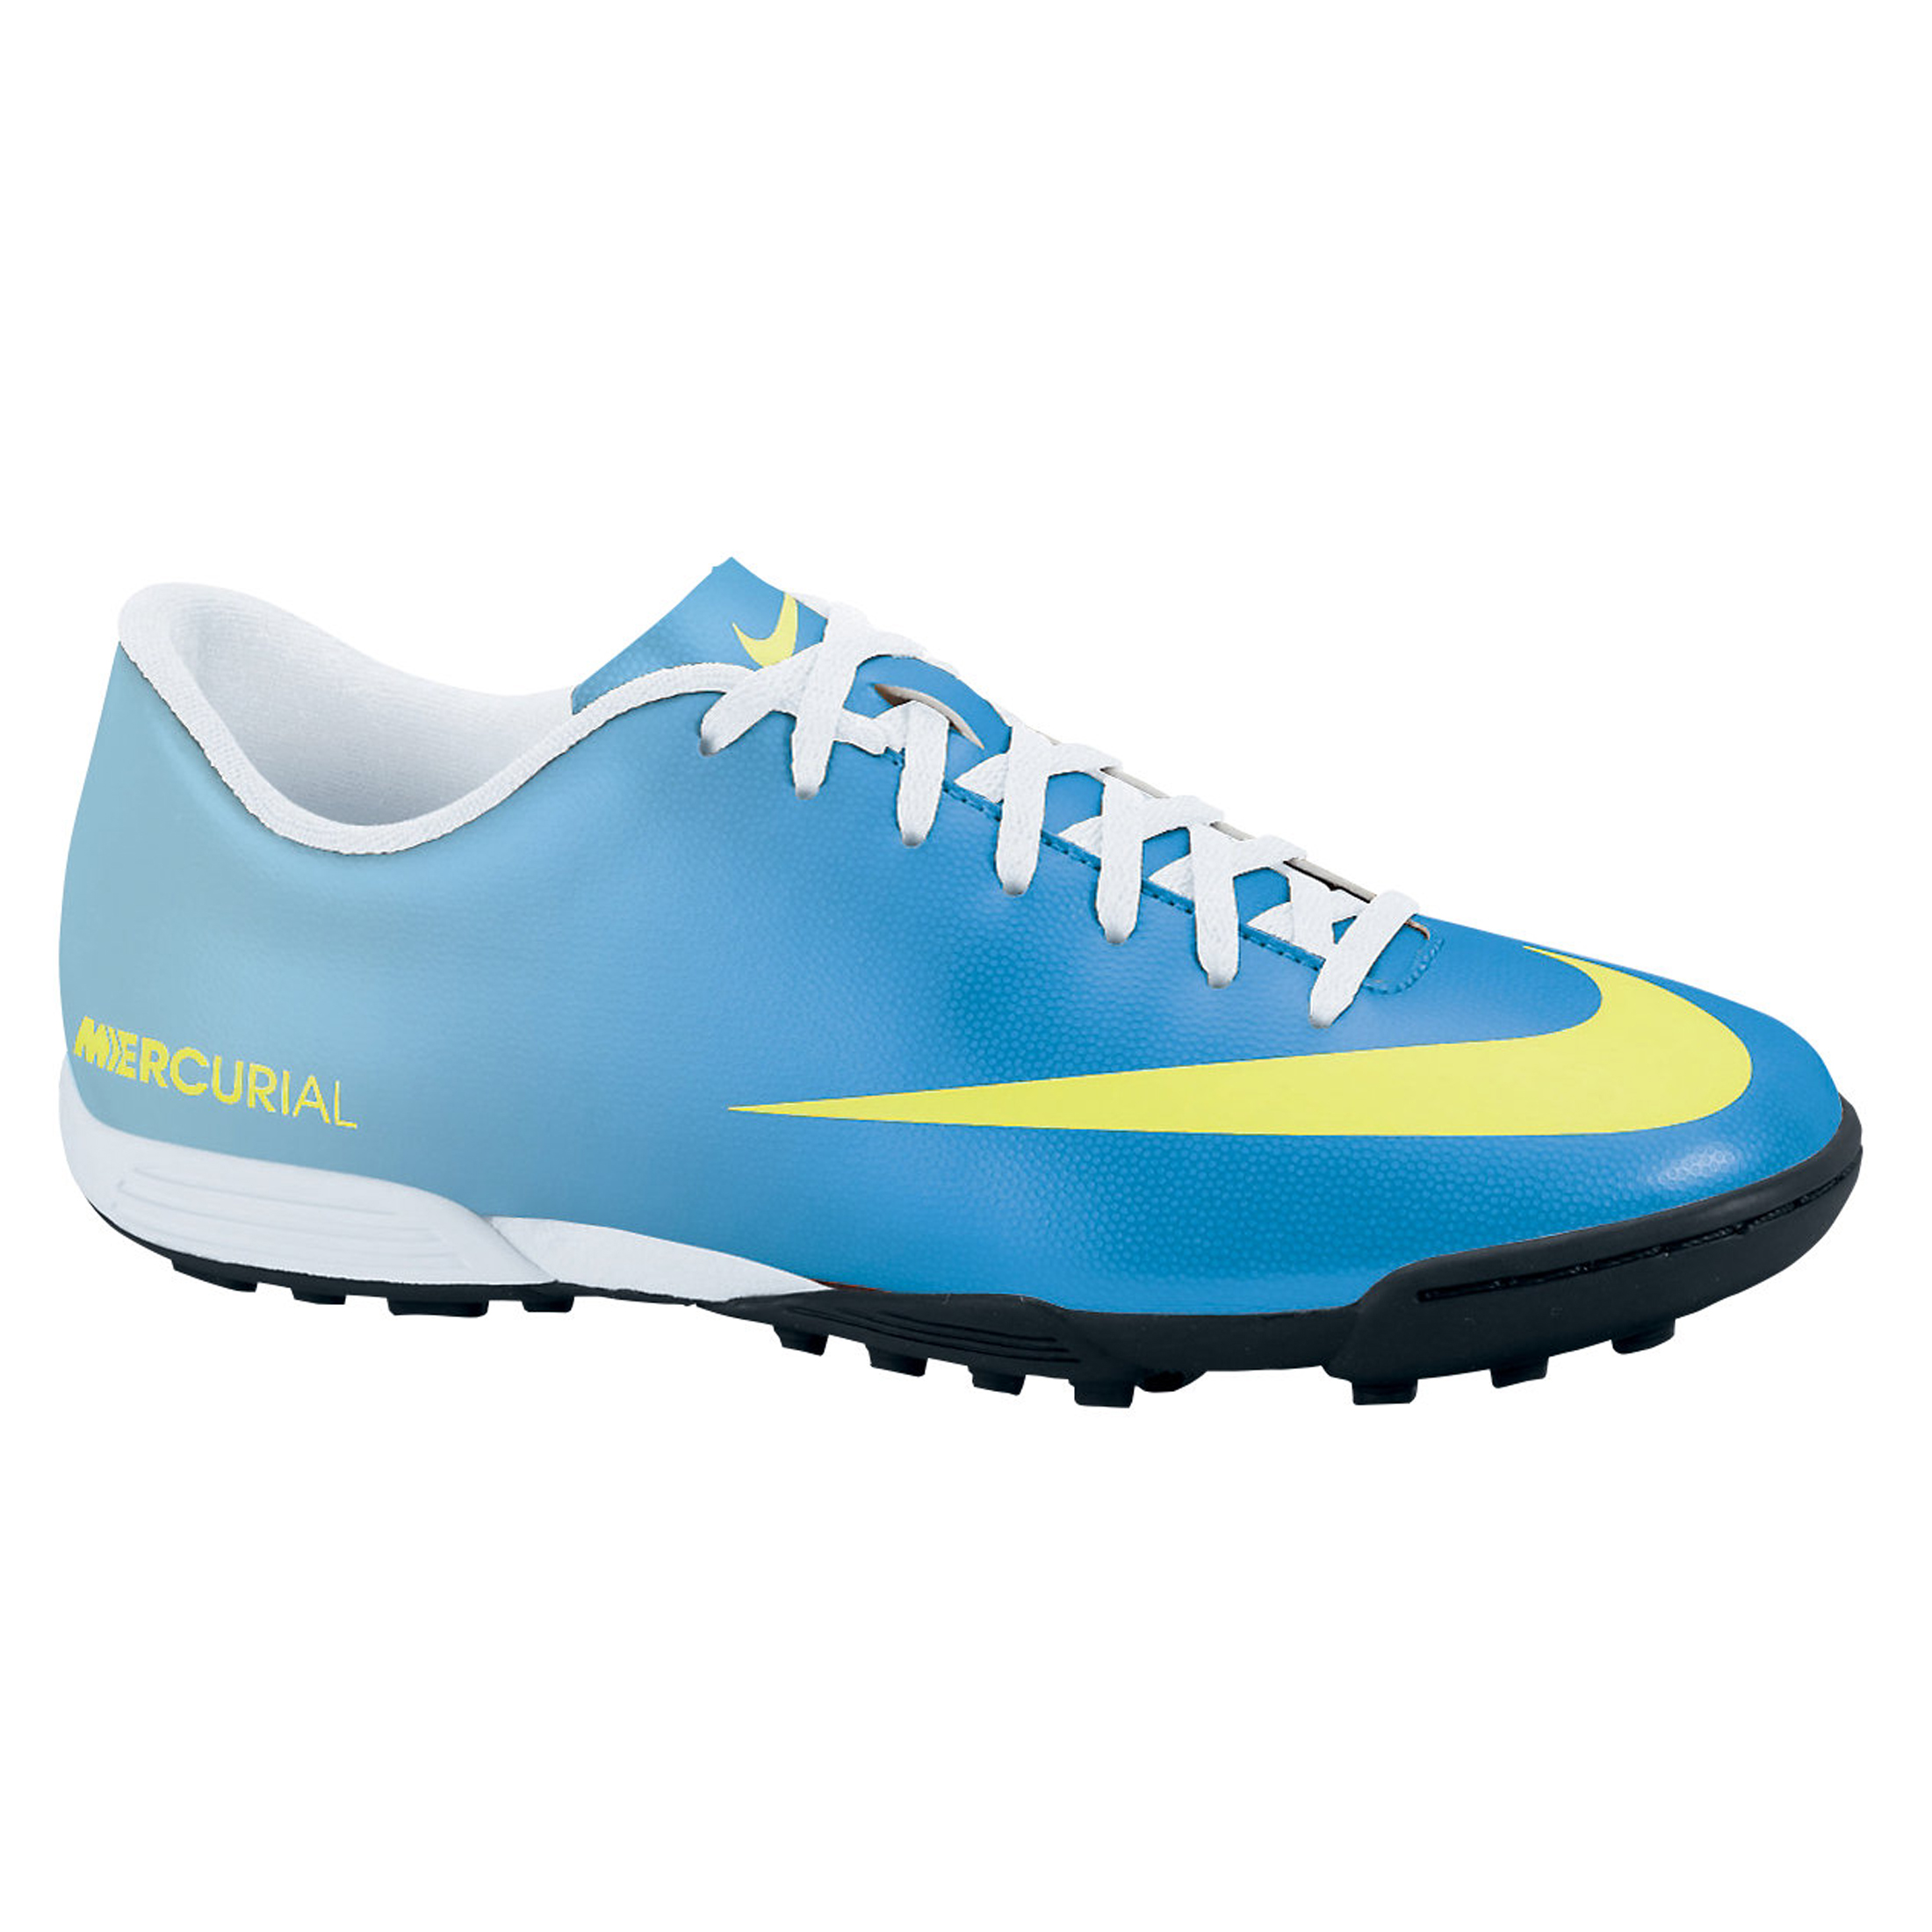 Nike Mercurial Vortex Astroturf Trainers - Neptune Blue/Volt/Toad Pool Blue